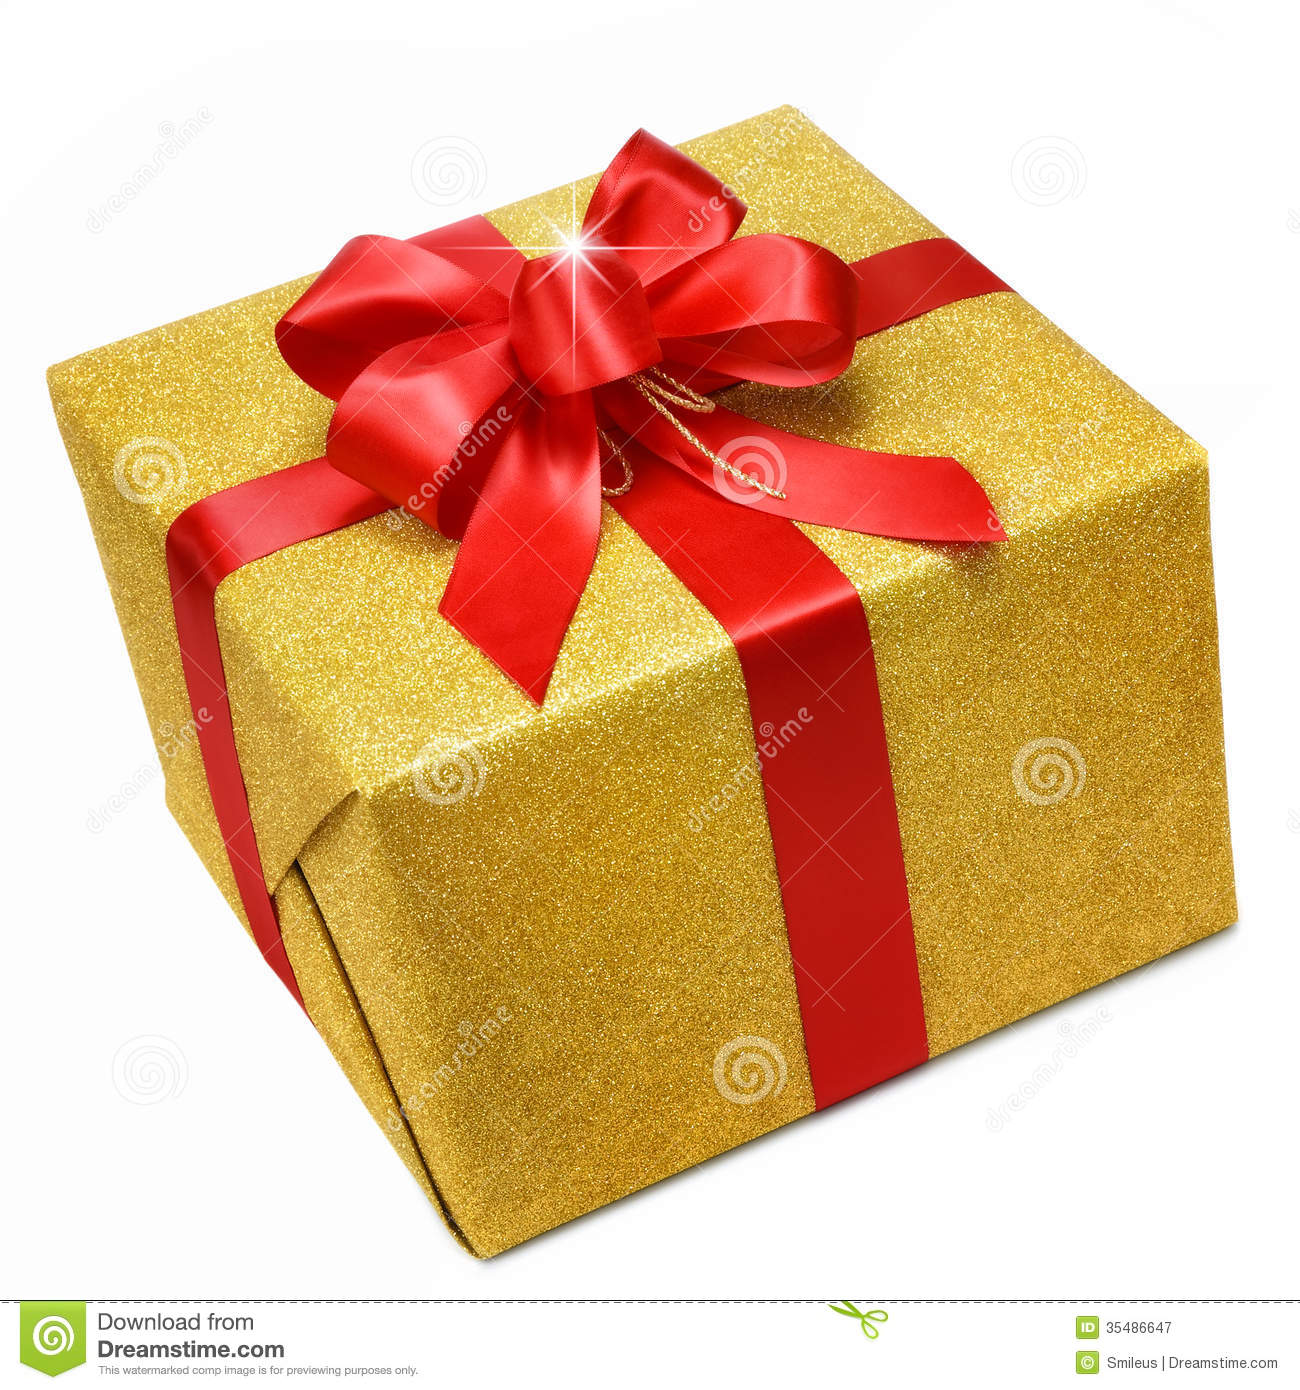 Gift box stock photos royalty free images dreamstime gold gift box with smart red bow glittering gold gift box on white background with negle Choice Image